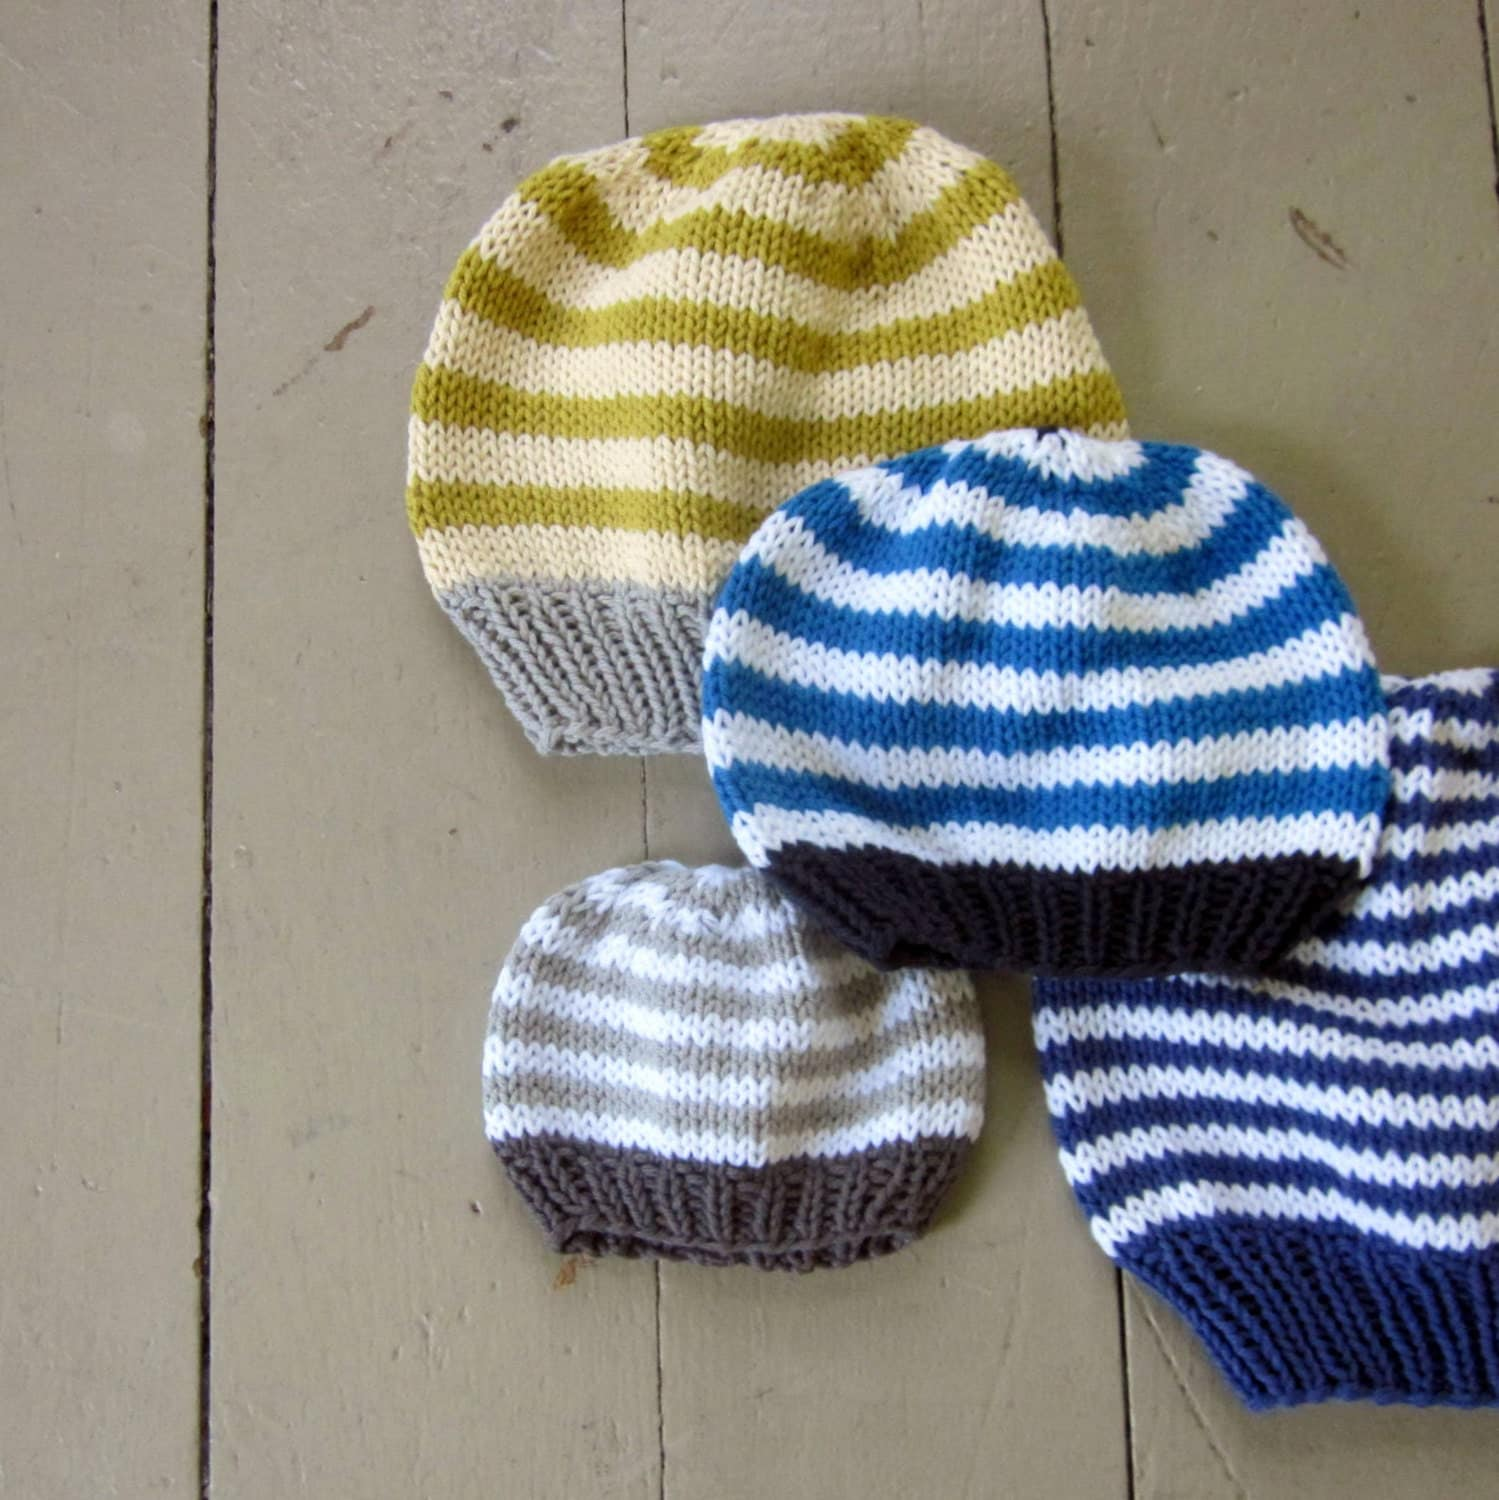 Knitting Pattern For Childs Beanie Hat : Pattern, basic hat knitting pattern, PDF knitted hat pattern: newborn, baby, ...